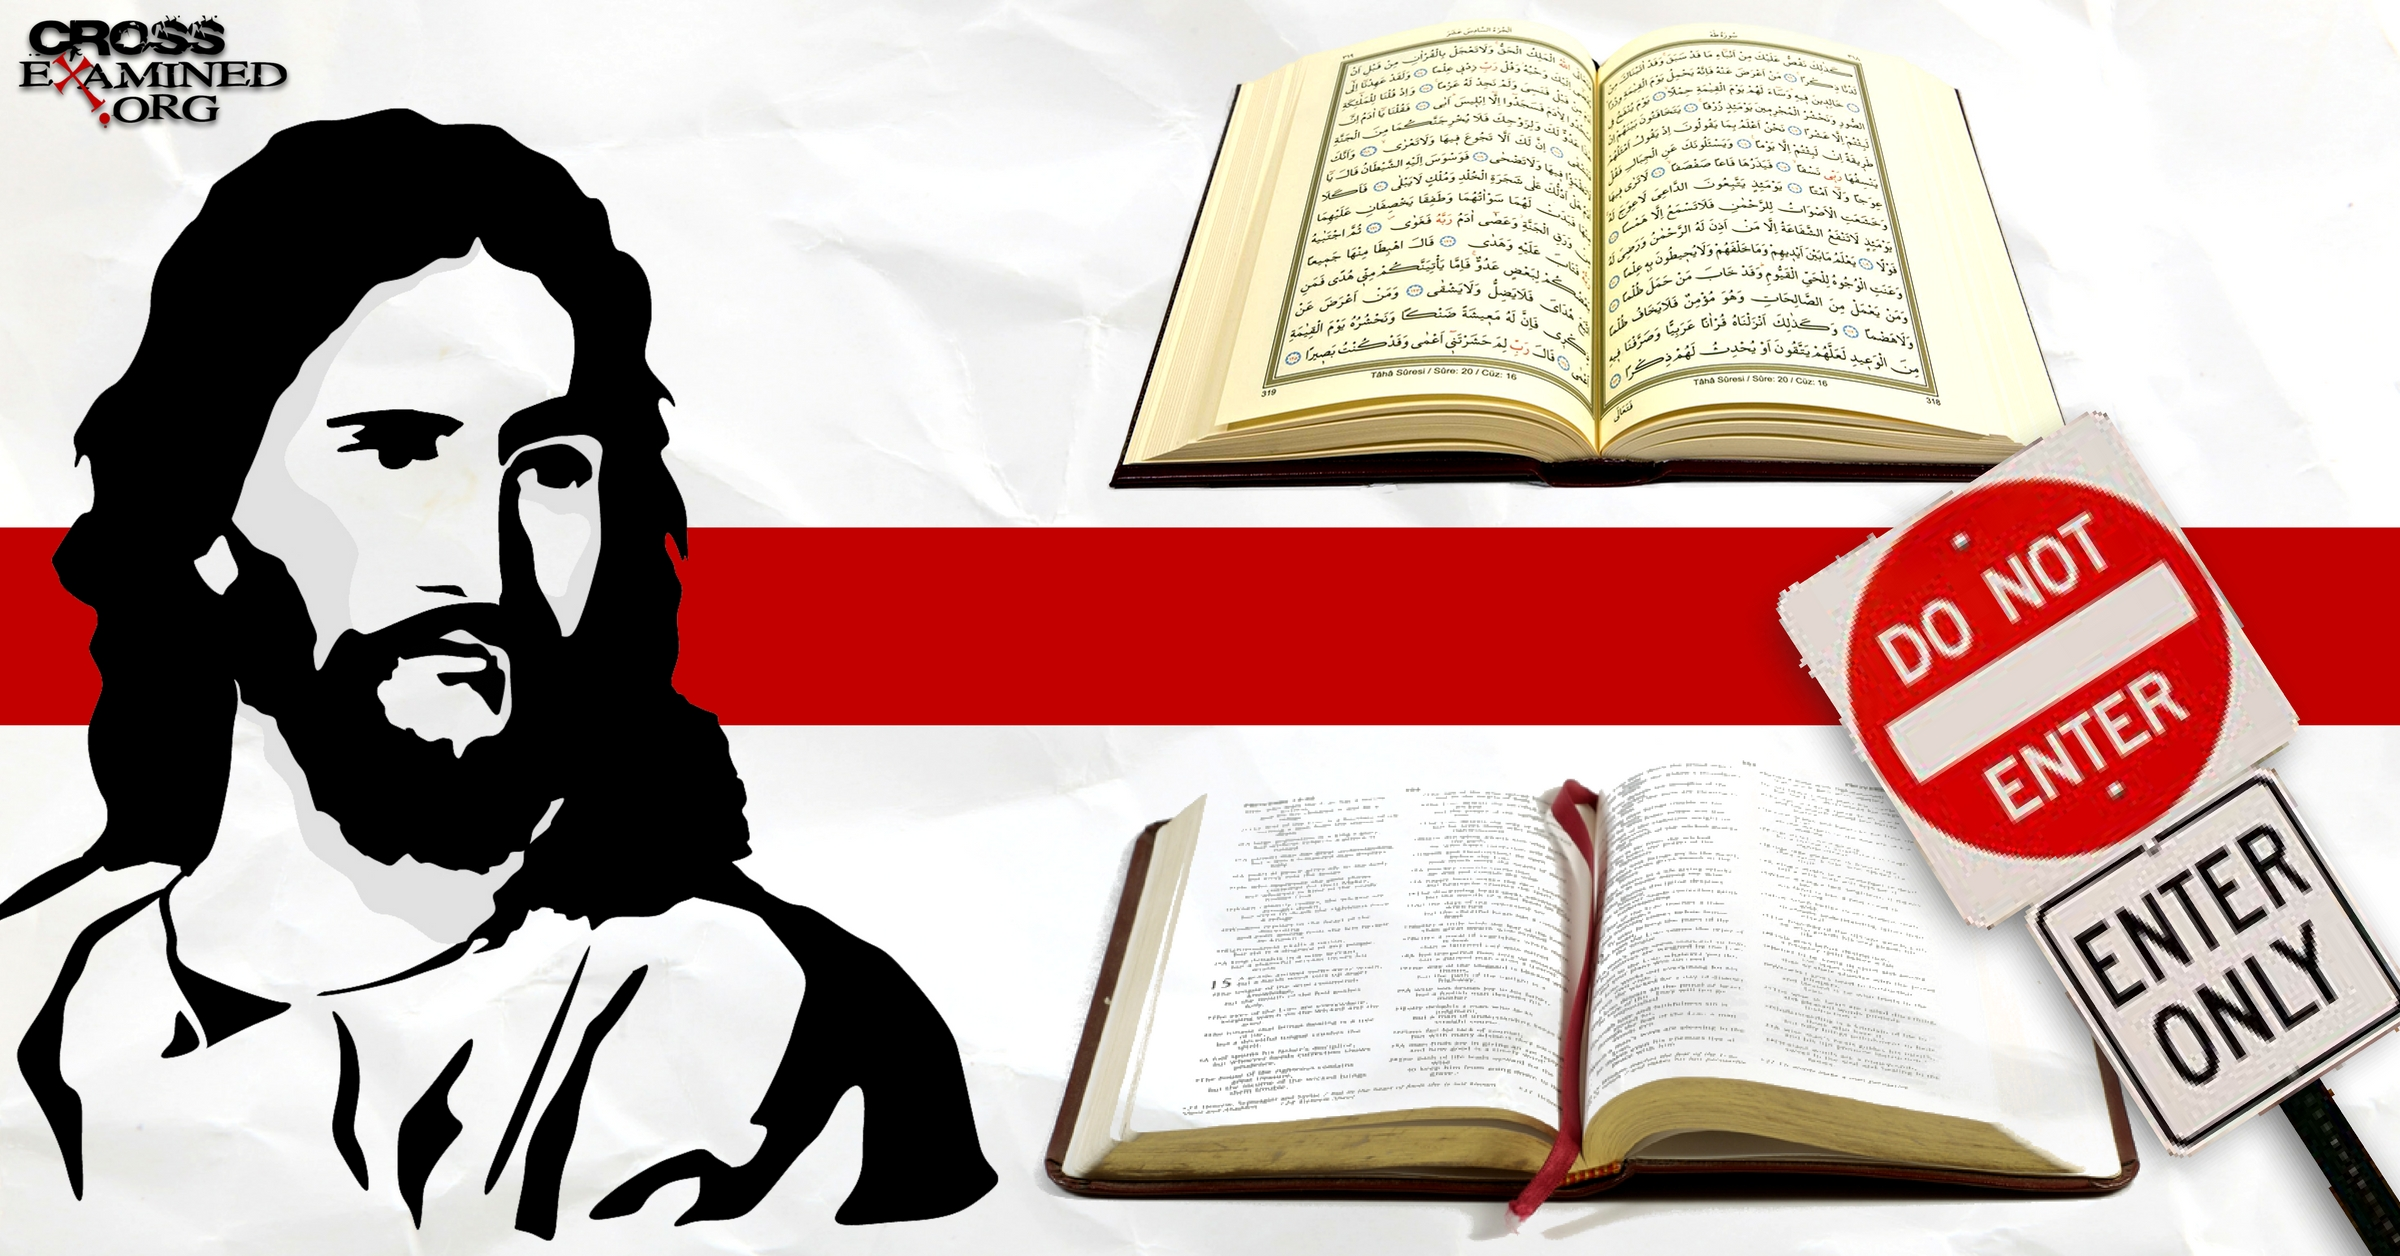 Bible and Koran BLOG